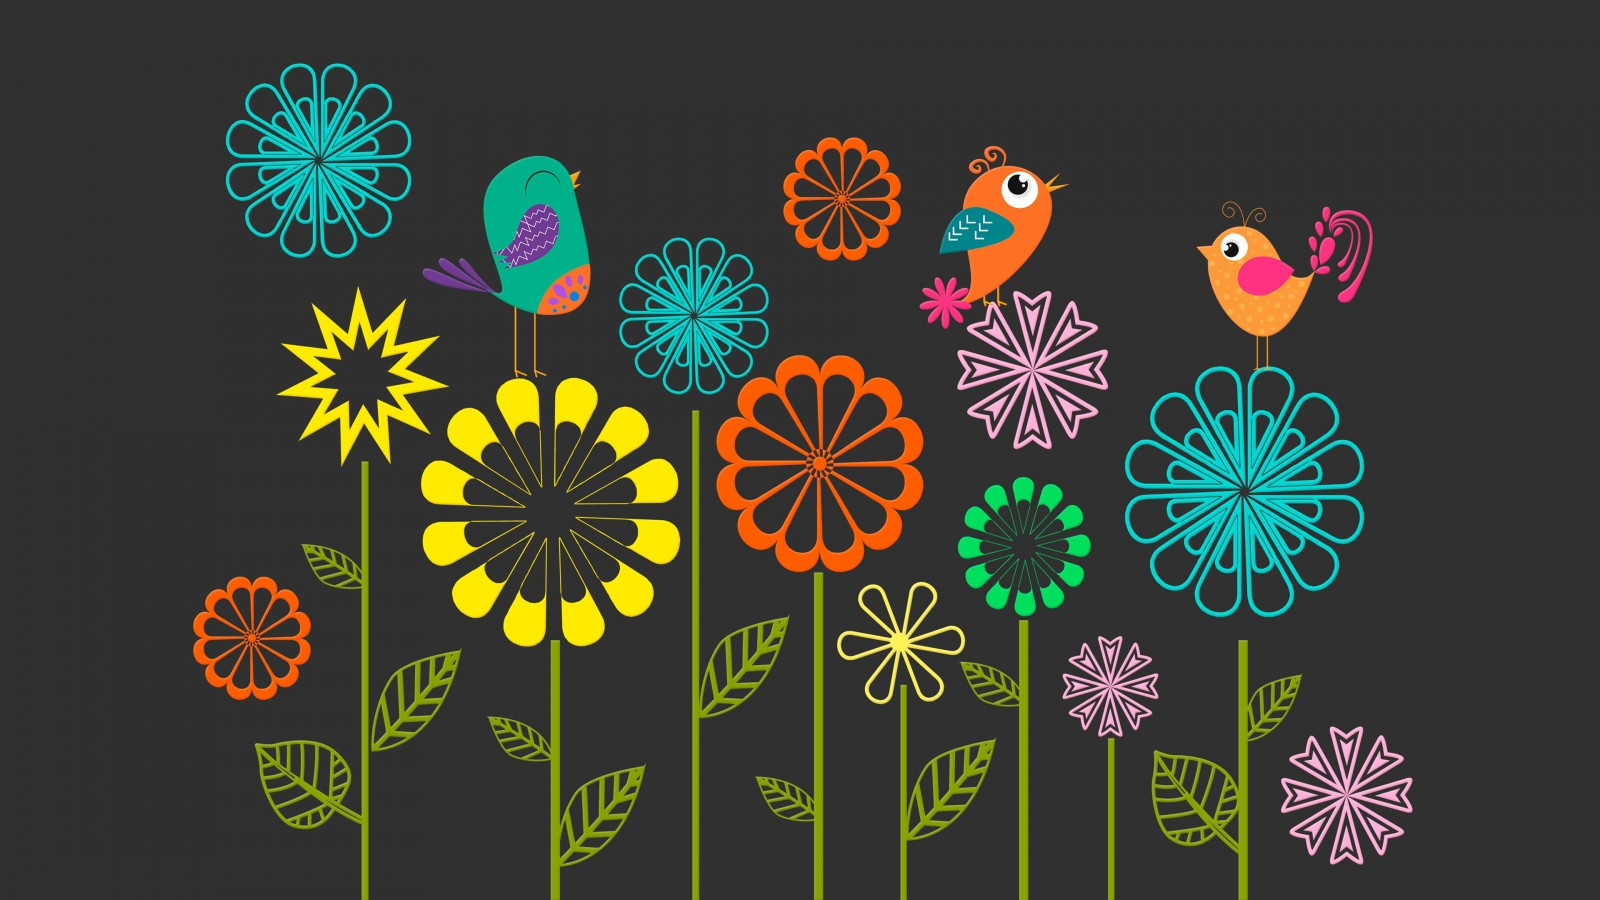 3d Wallpaper For Hp Laptop Colorful Vector Flowers Birds Wallpapers Hd Wallpapers